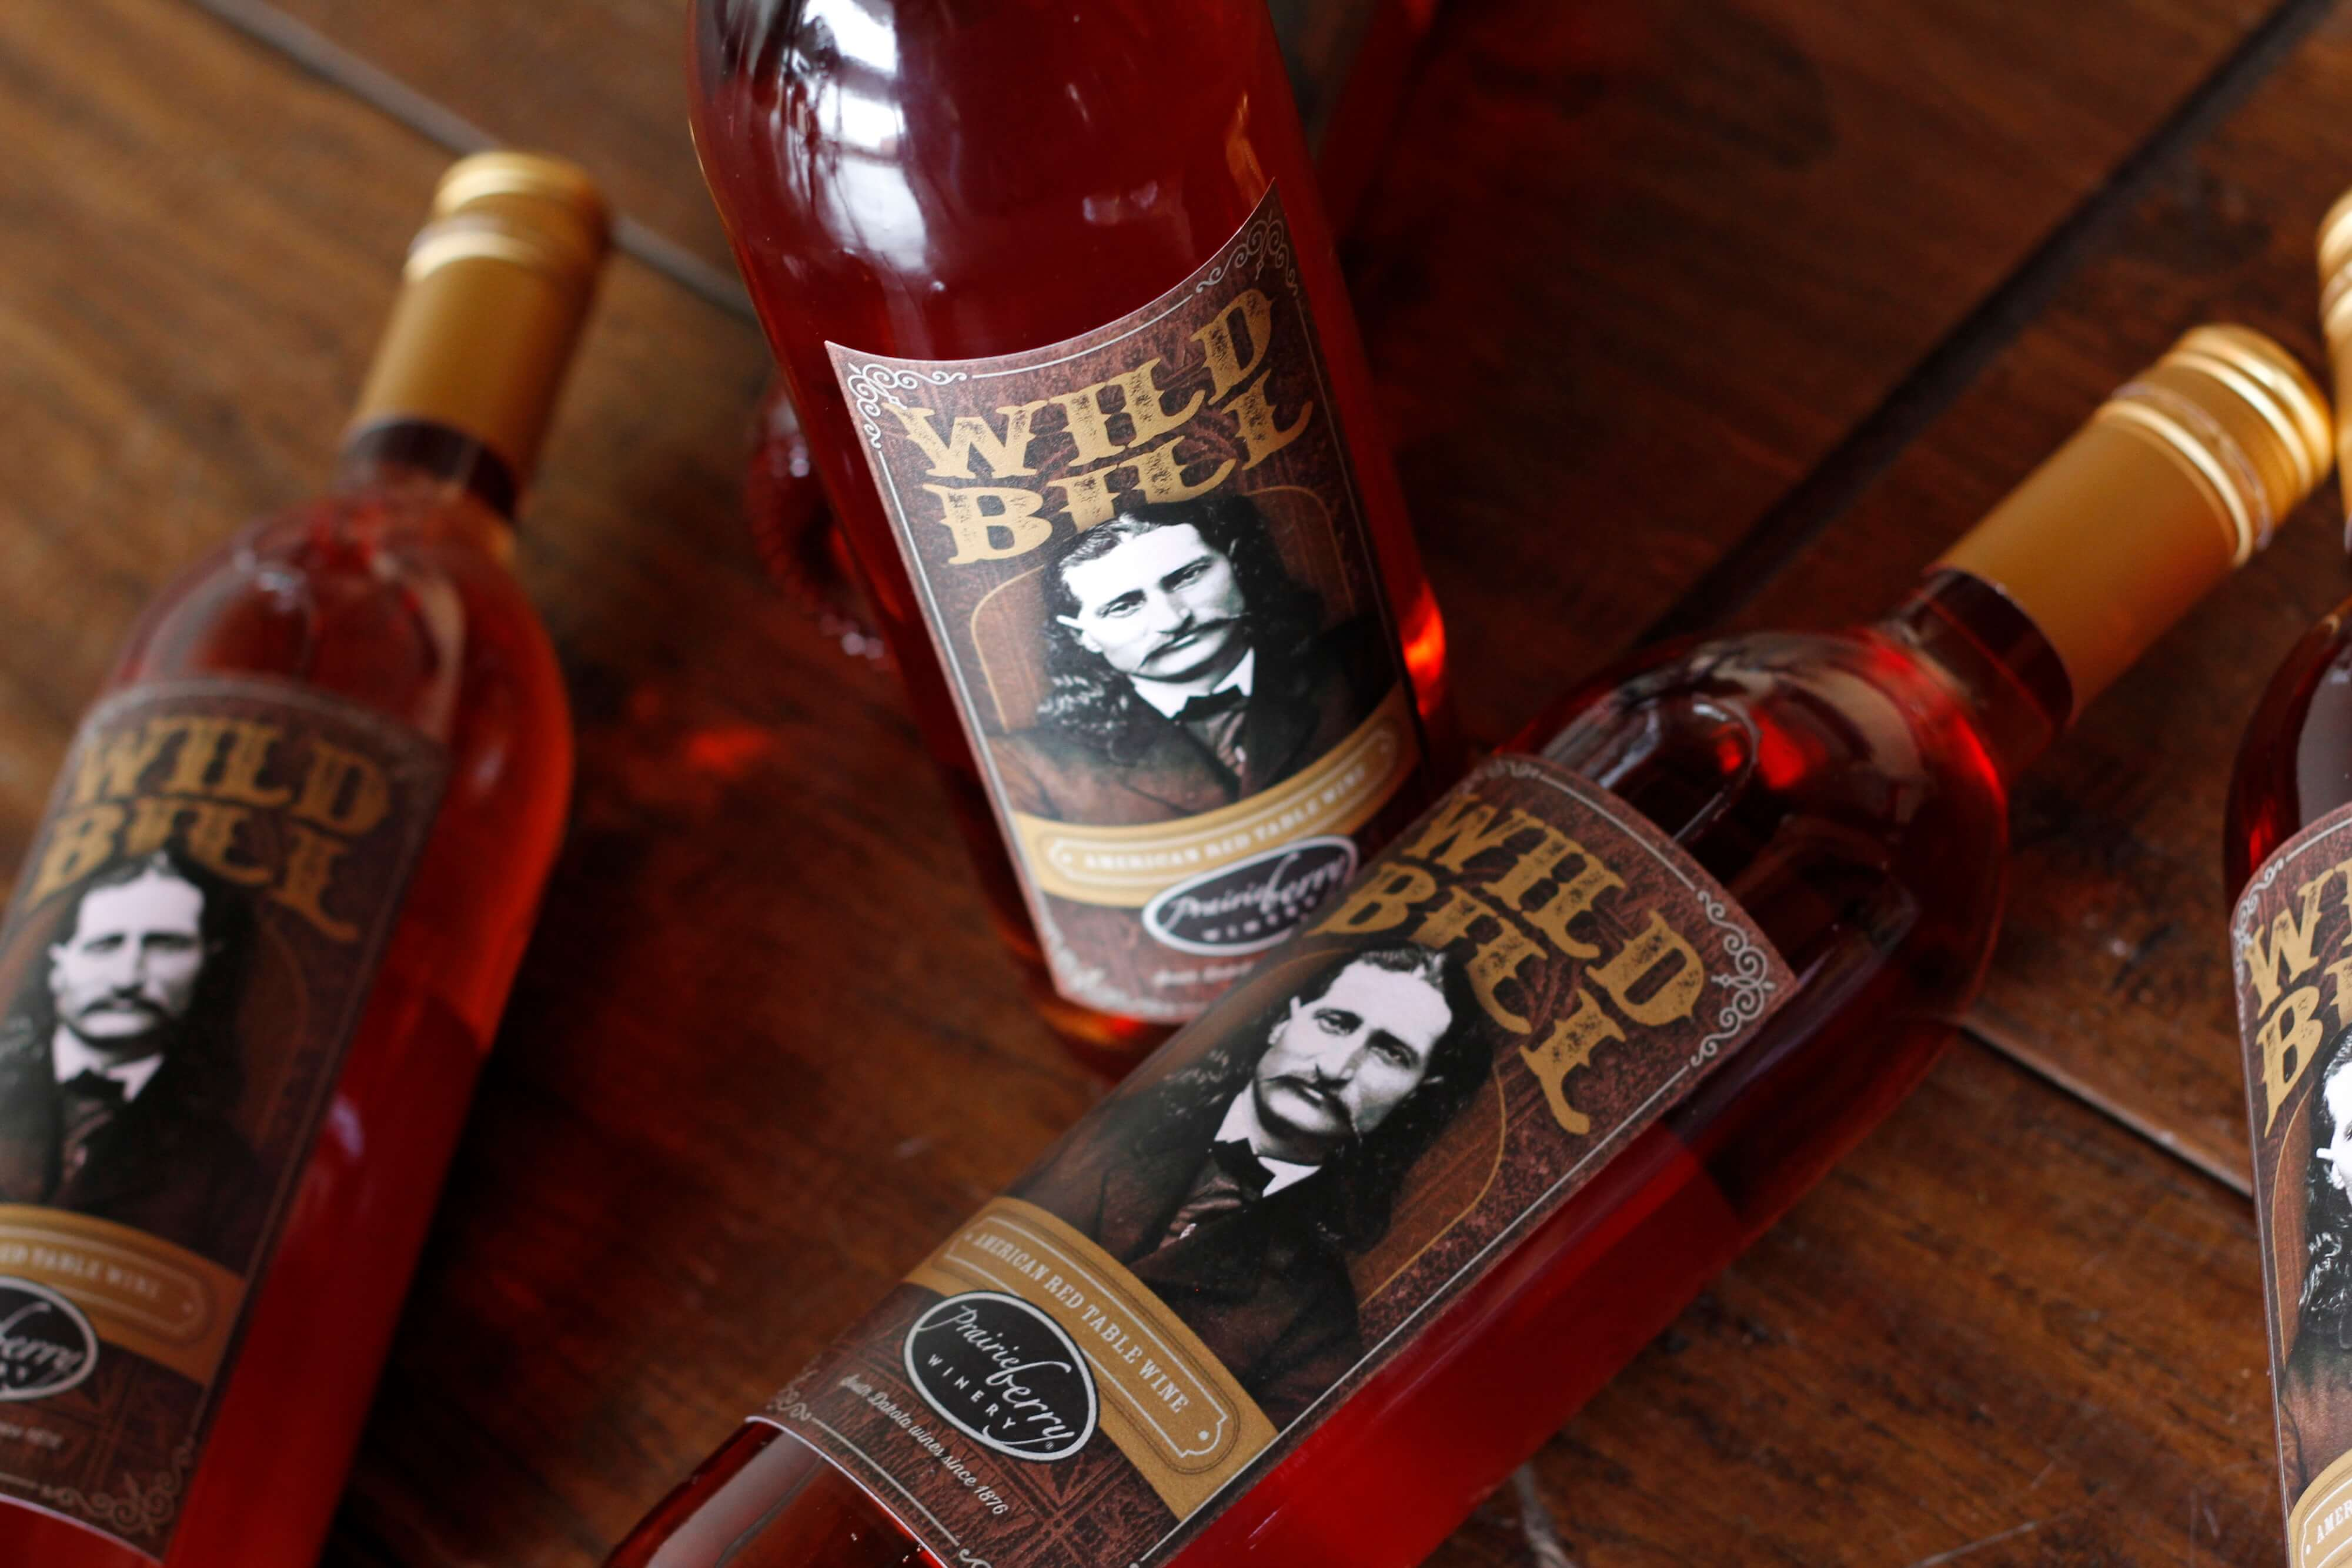 Named in honor of a Deadwood legend, Prairie Berry Winery's Wild Bill wine is made with native Catawba grapes.